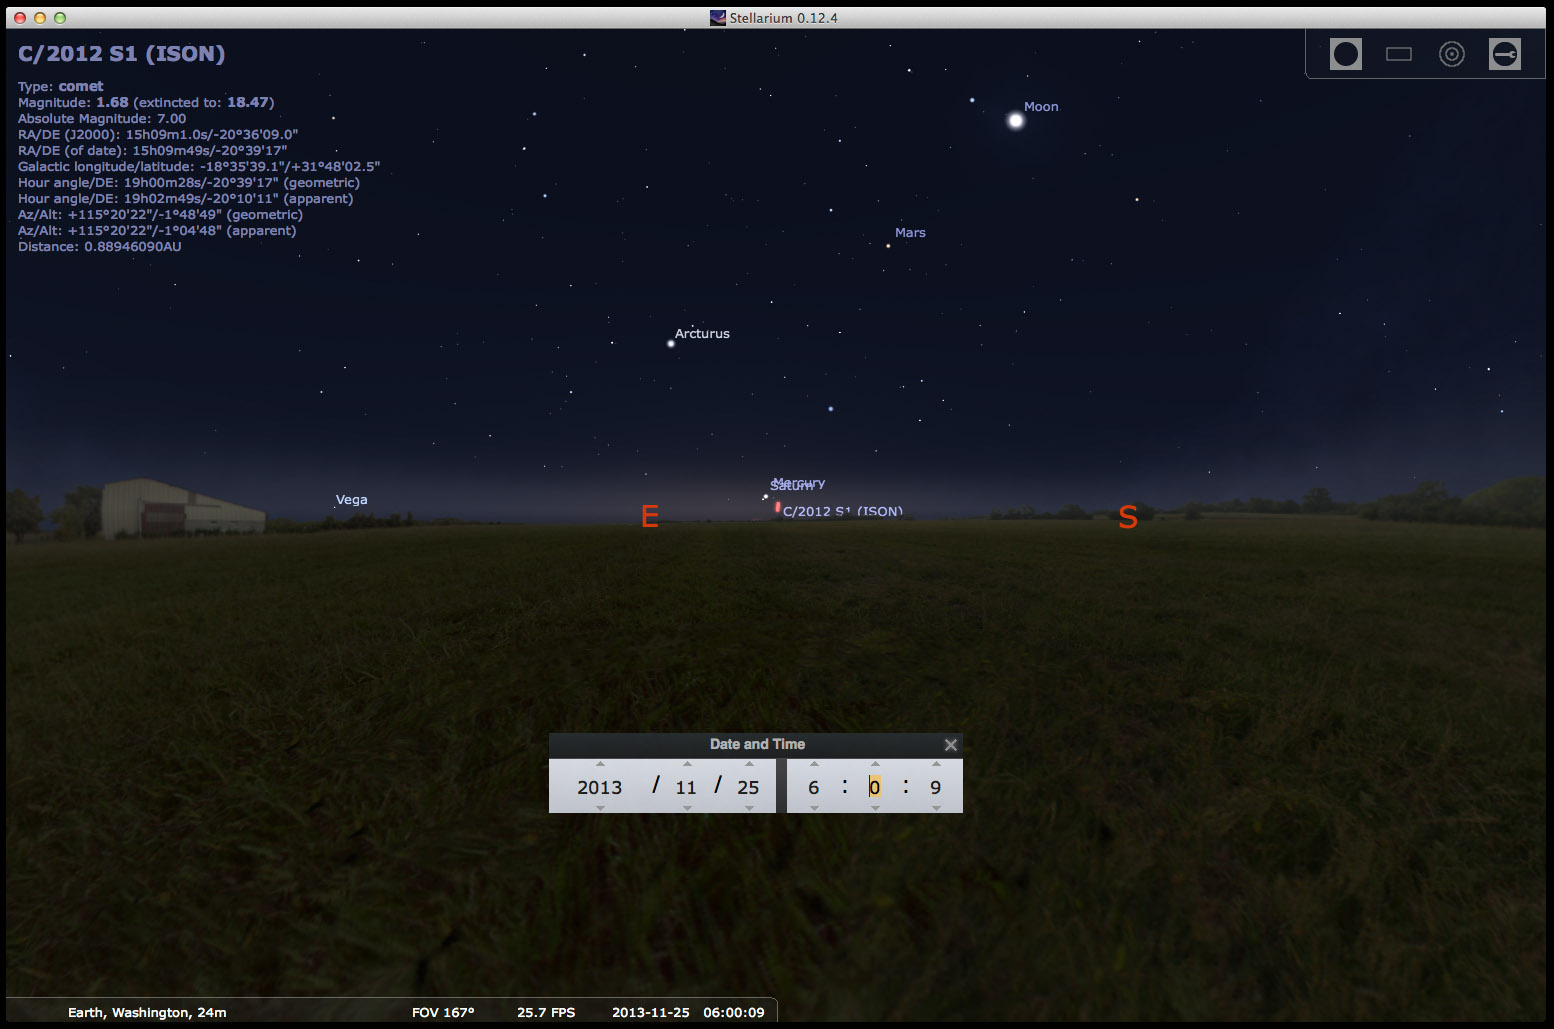 Comets & Meteors - Mike's Astro Photos